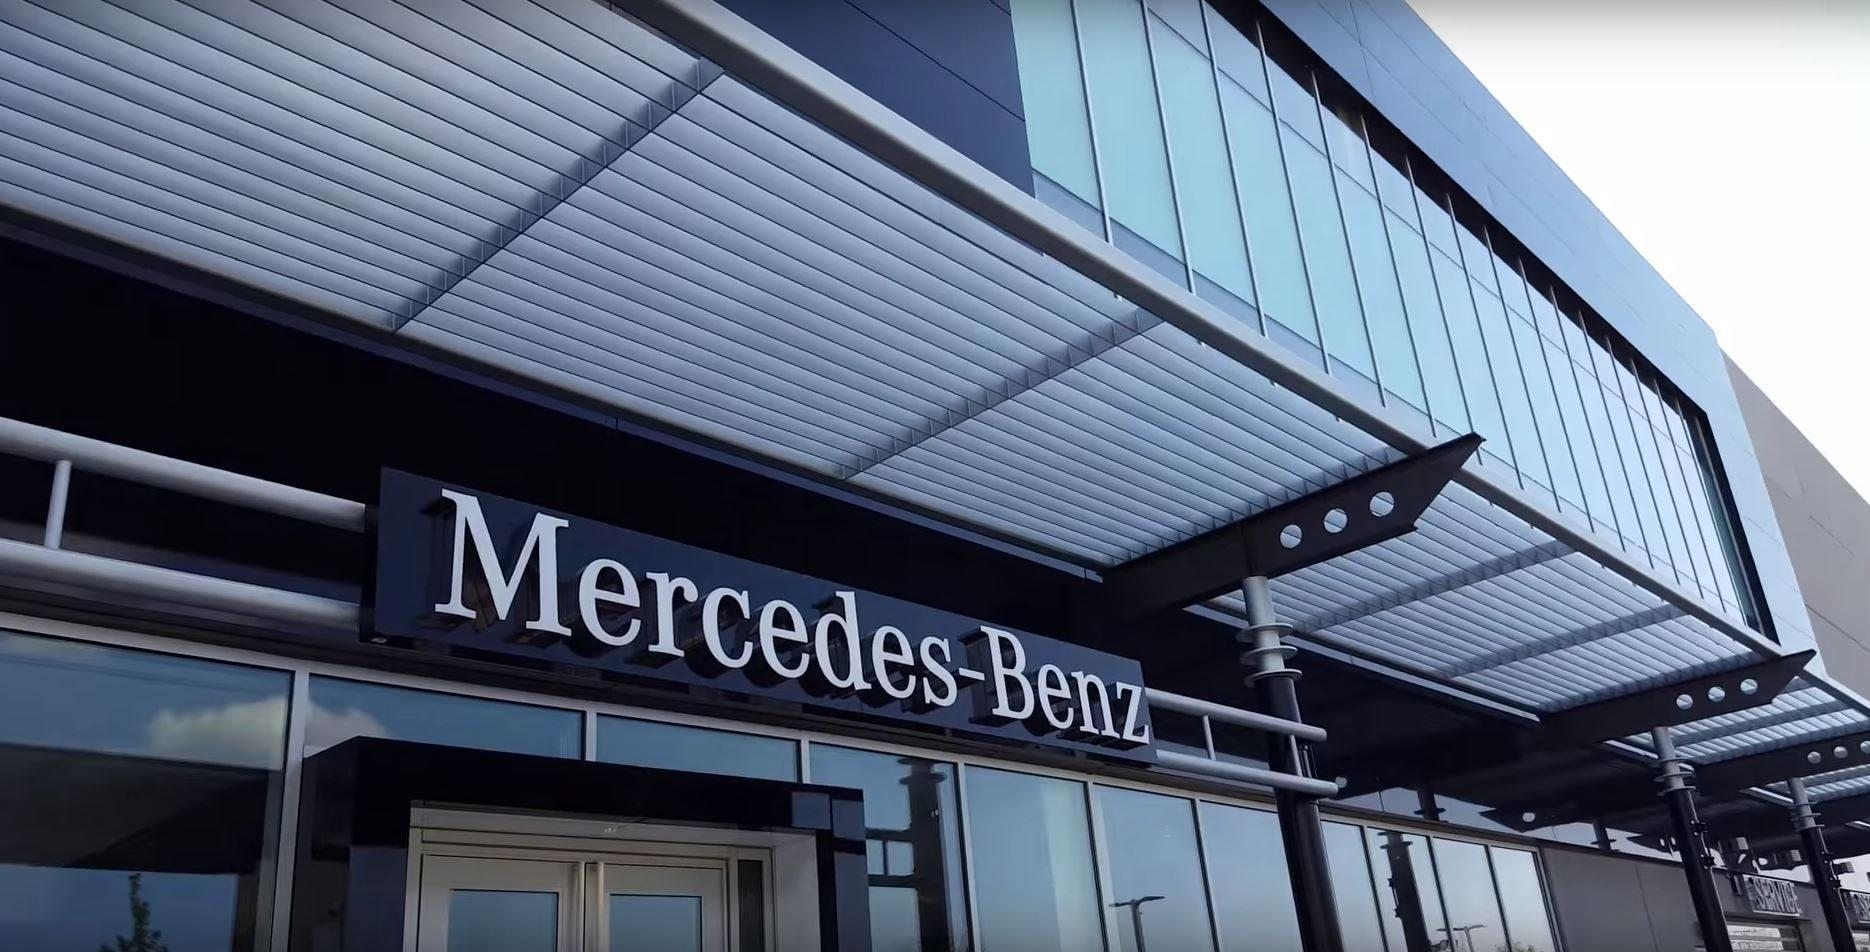 Mercedes benz of chicago at 1520 w north ave chicago il for Mercedes benz north ave chicago